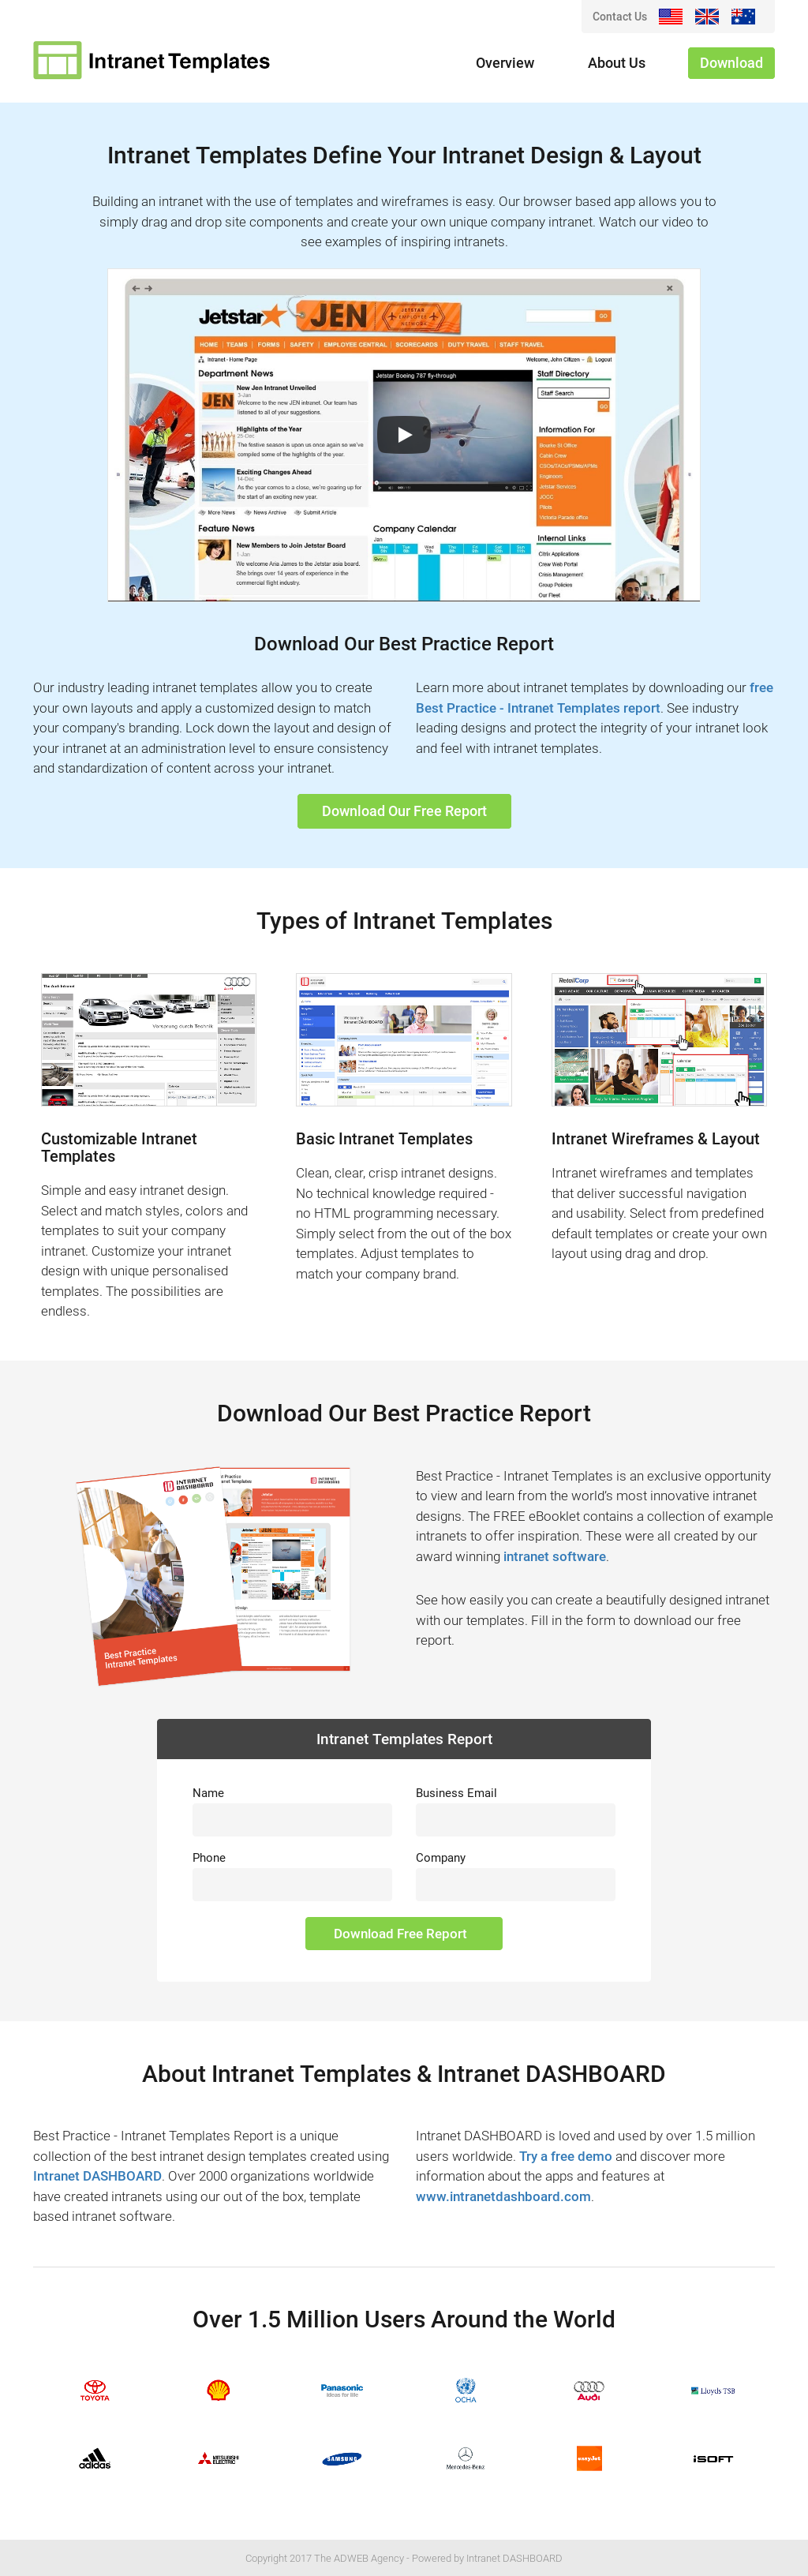 Intranet Templates Competitors, Revenue and Employees - Owler ...